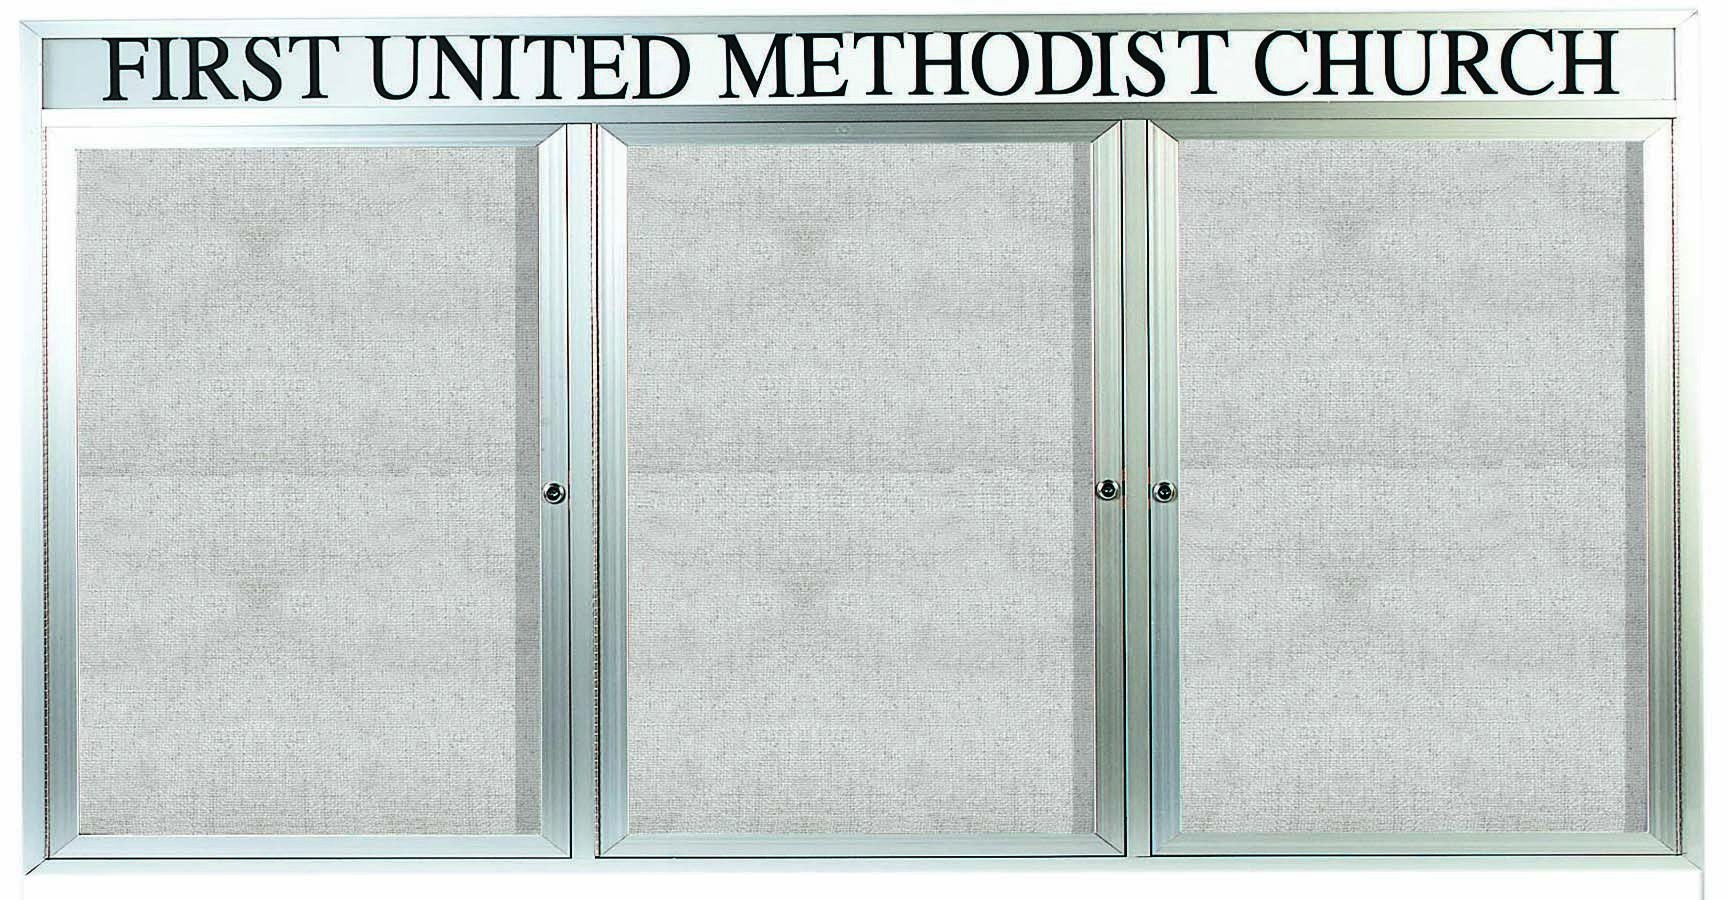 Outdoor Enclosed Aluminum Indoor Bulletin Board Cabinet W/header -36